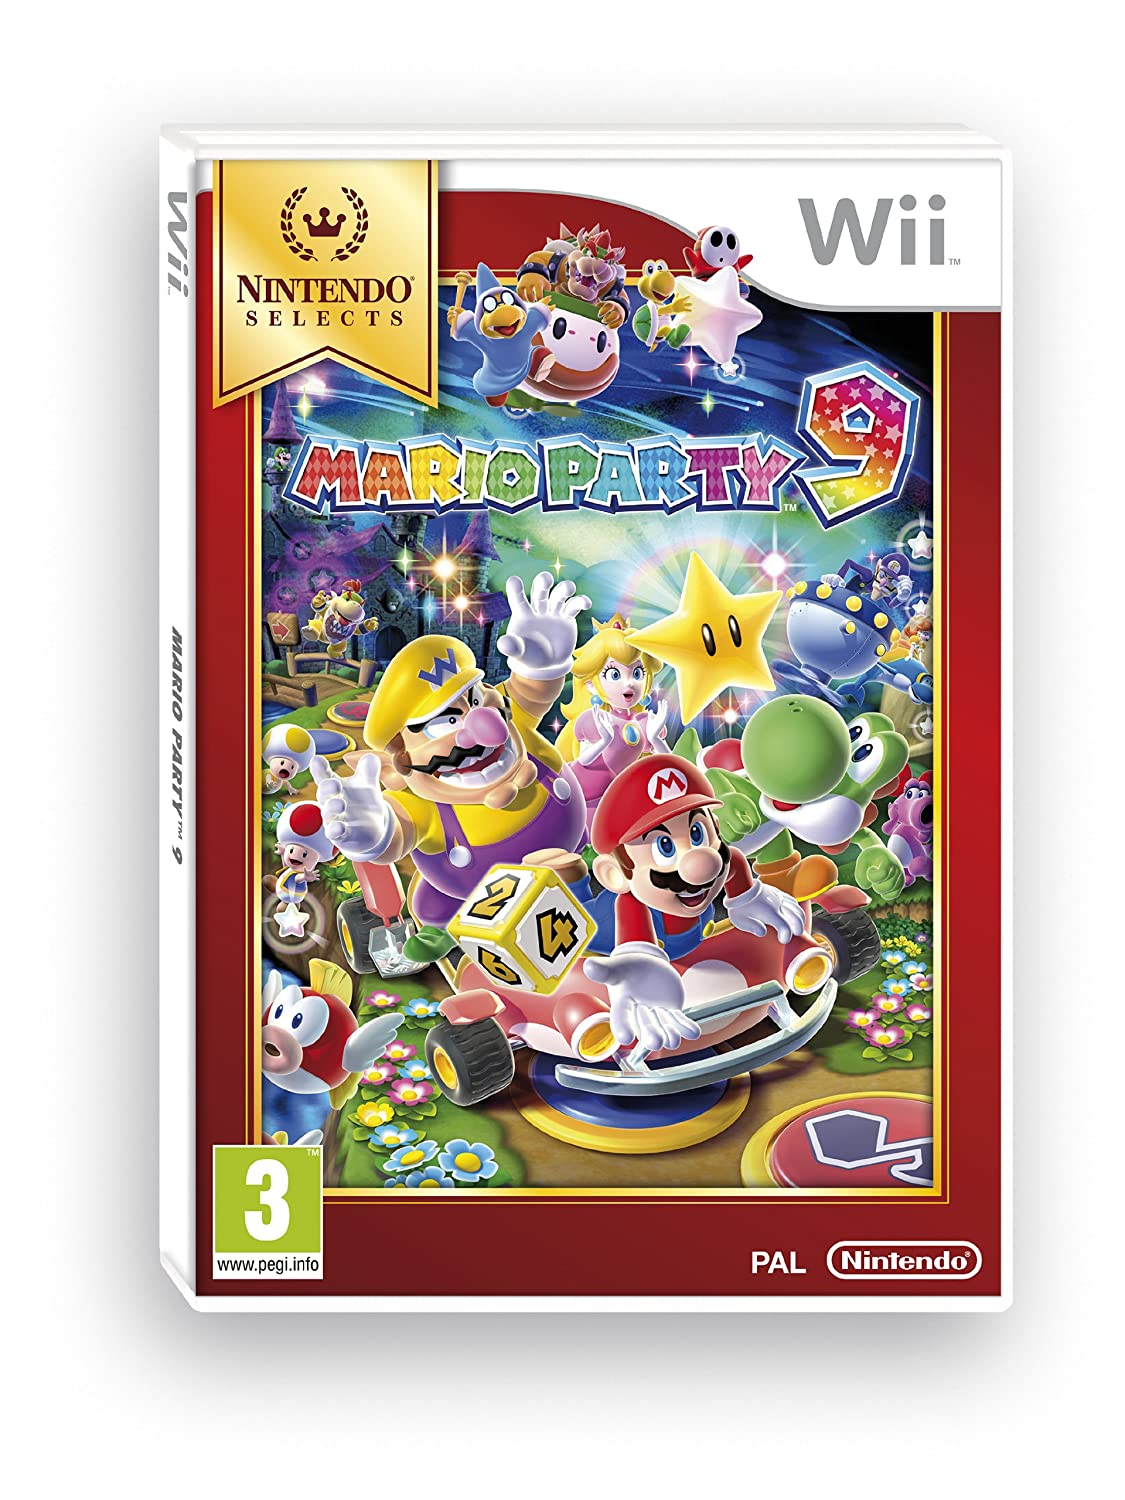 Nintendo Mario Party 9 Selects Video Games